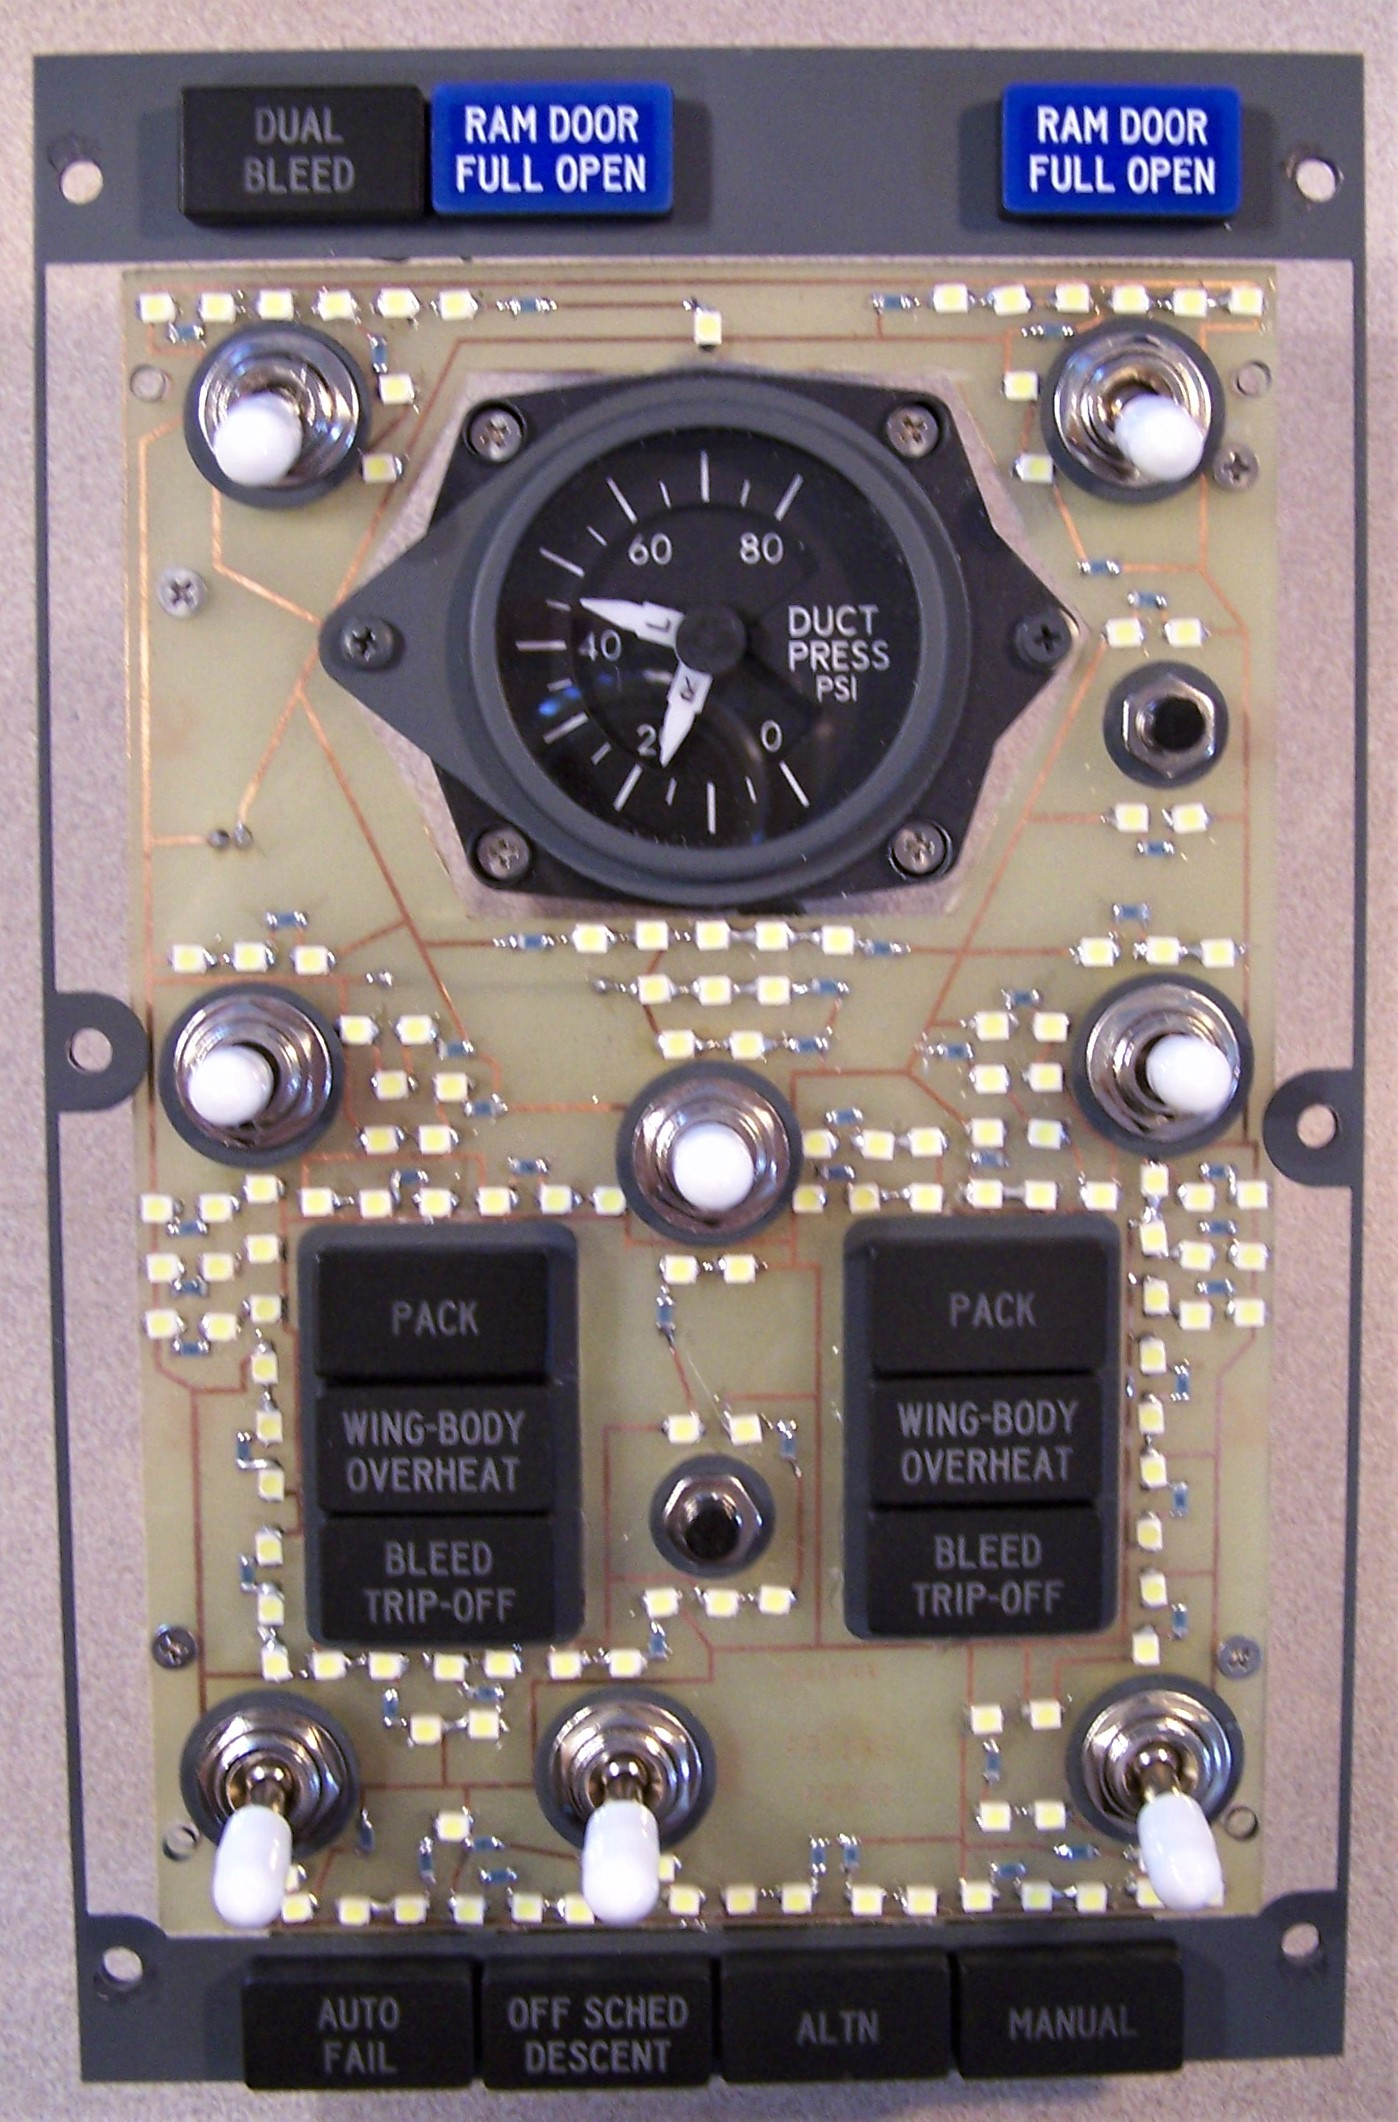 Boeing 737 Panel Dimensions Instrument Cluster Circuit Board It Is Bolted To The Mount And Switches Pneumatics Backplate